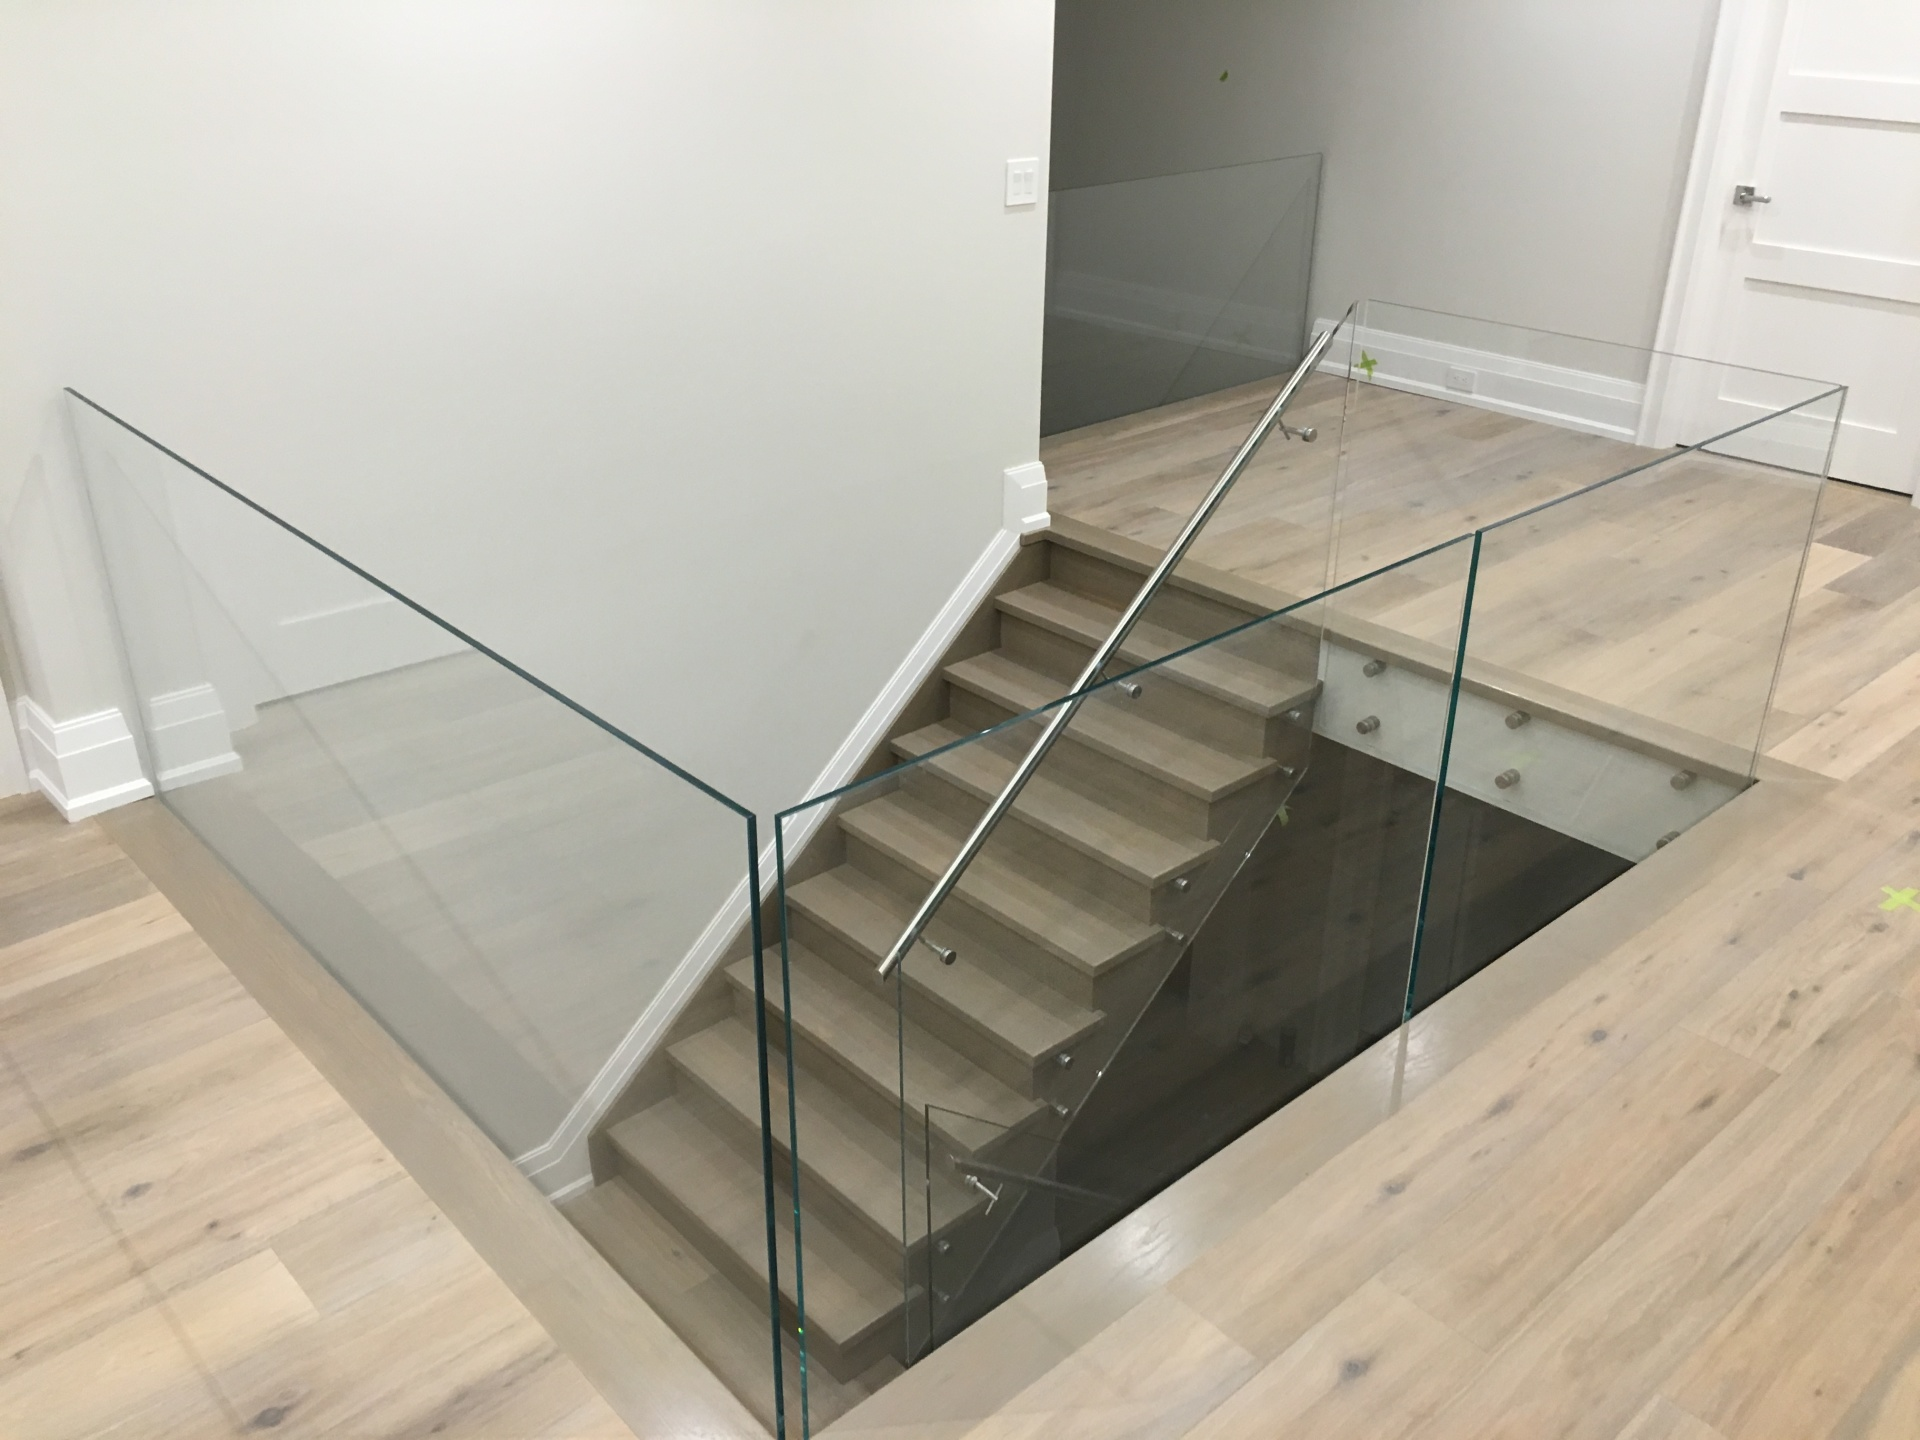 Low iron glass railing